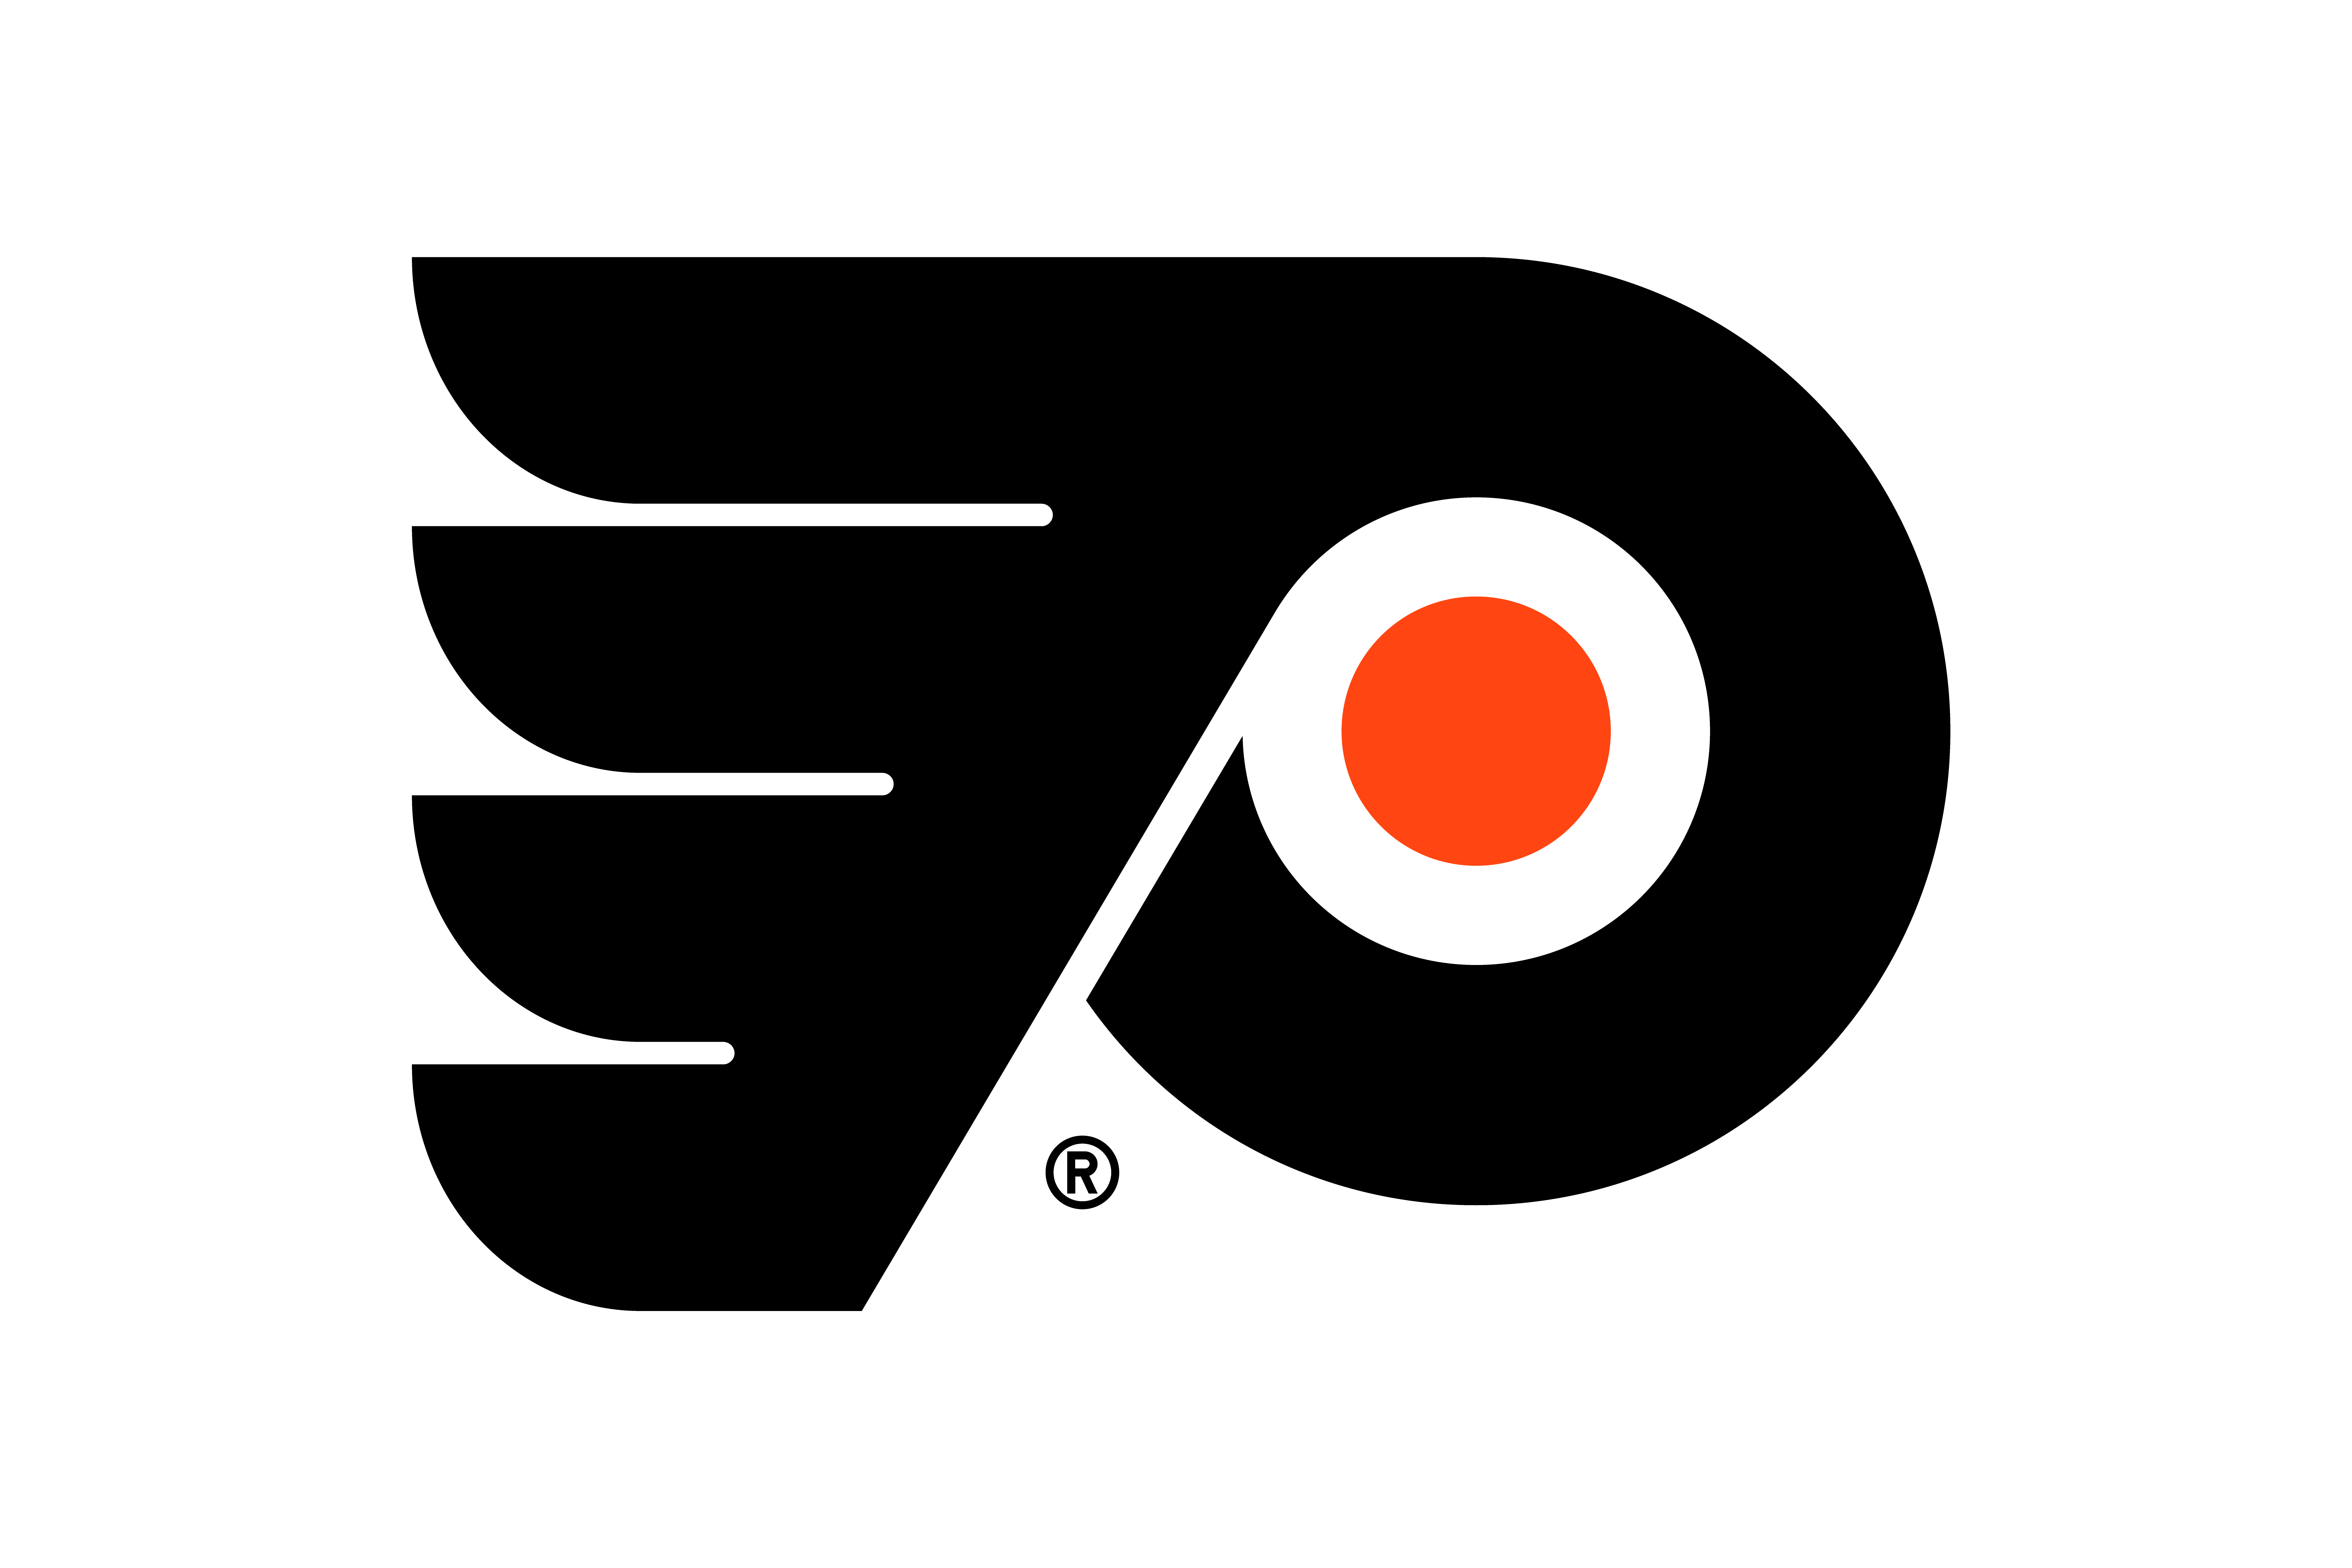 Philadelphia Flyers 8k Ultra HD Wallpaper And Background Image